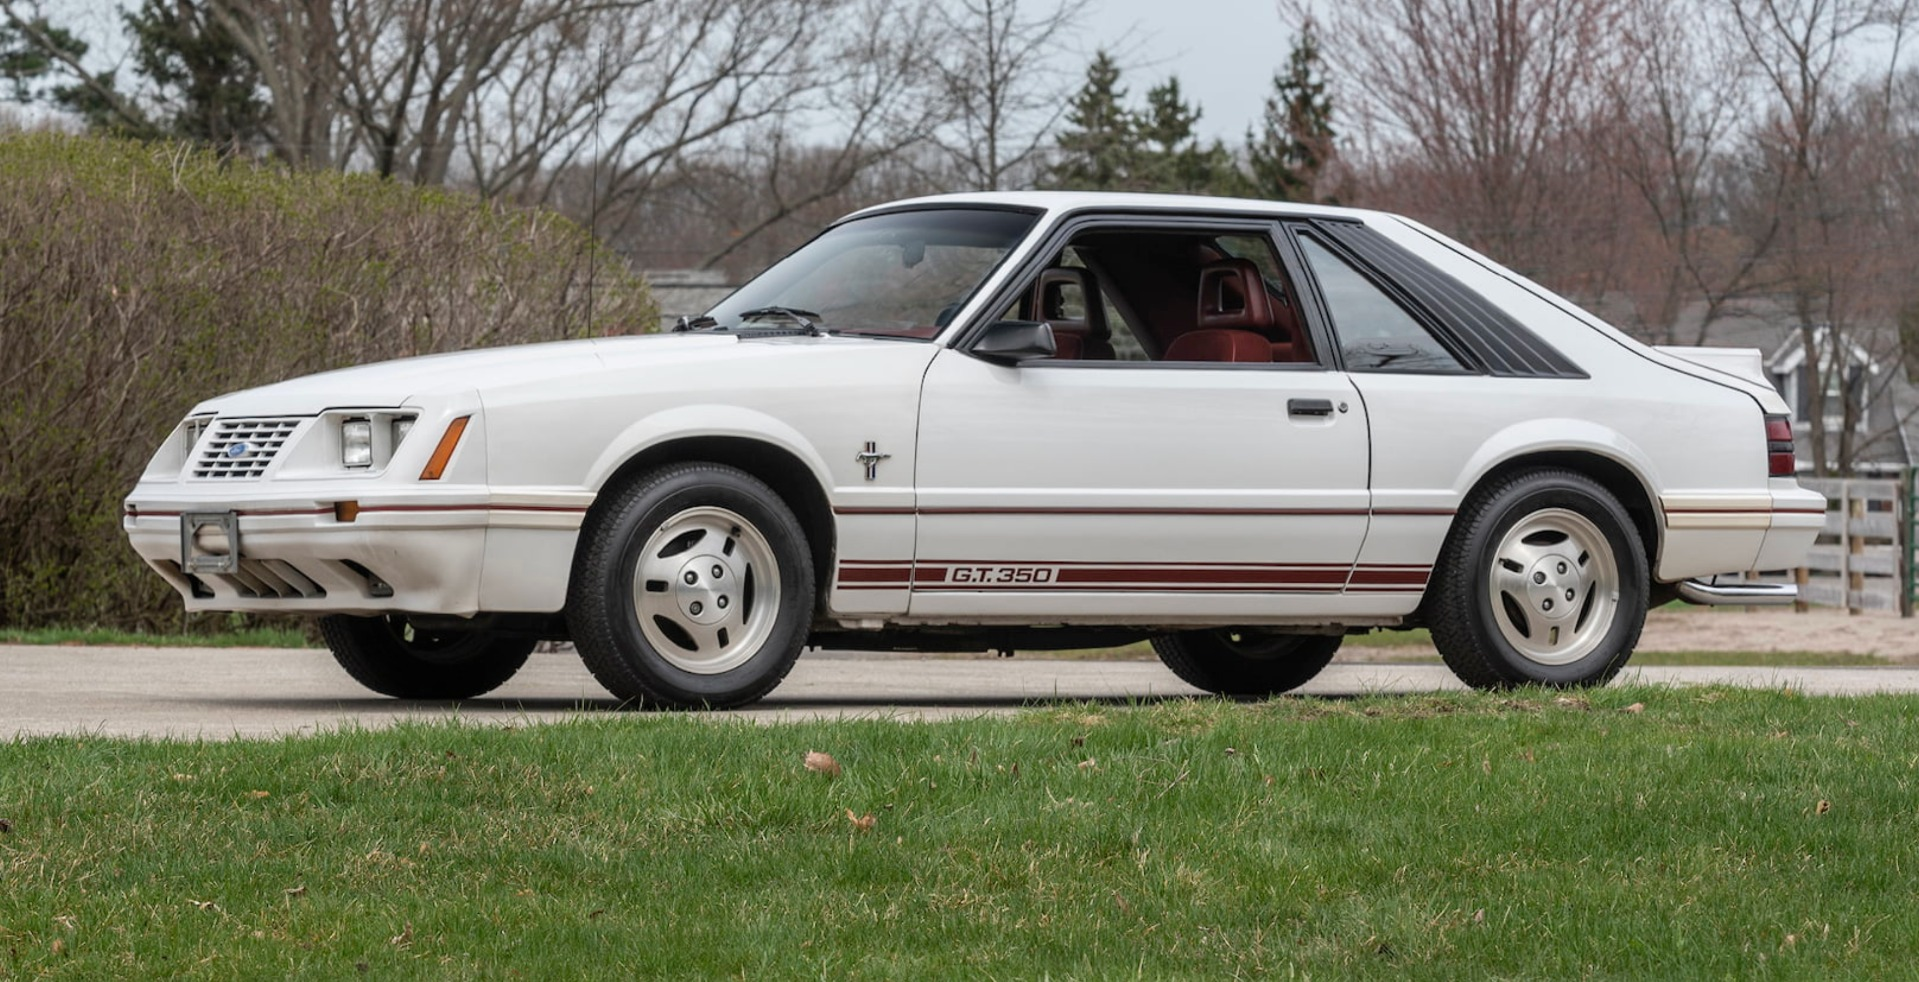 Used 1984 Ford Mustang -20th Anniversary Edition-One Owner-Rare-Clean Auto Check Report-SEE VIDEO- | Mundelein, IL